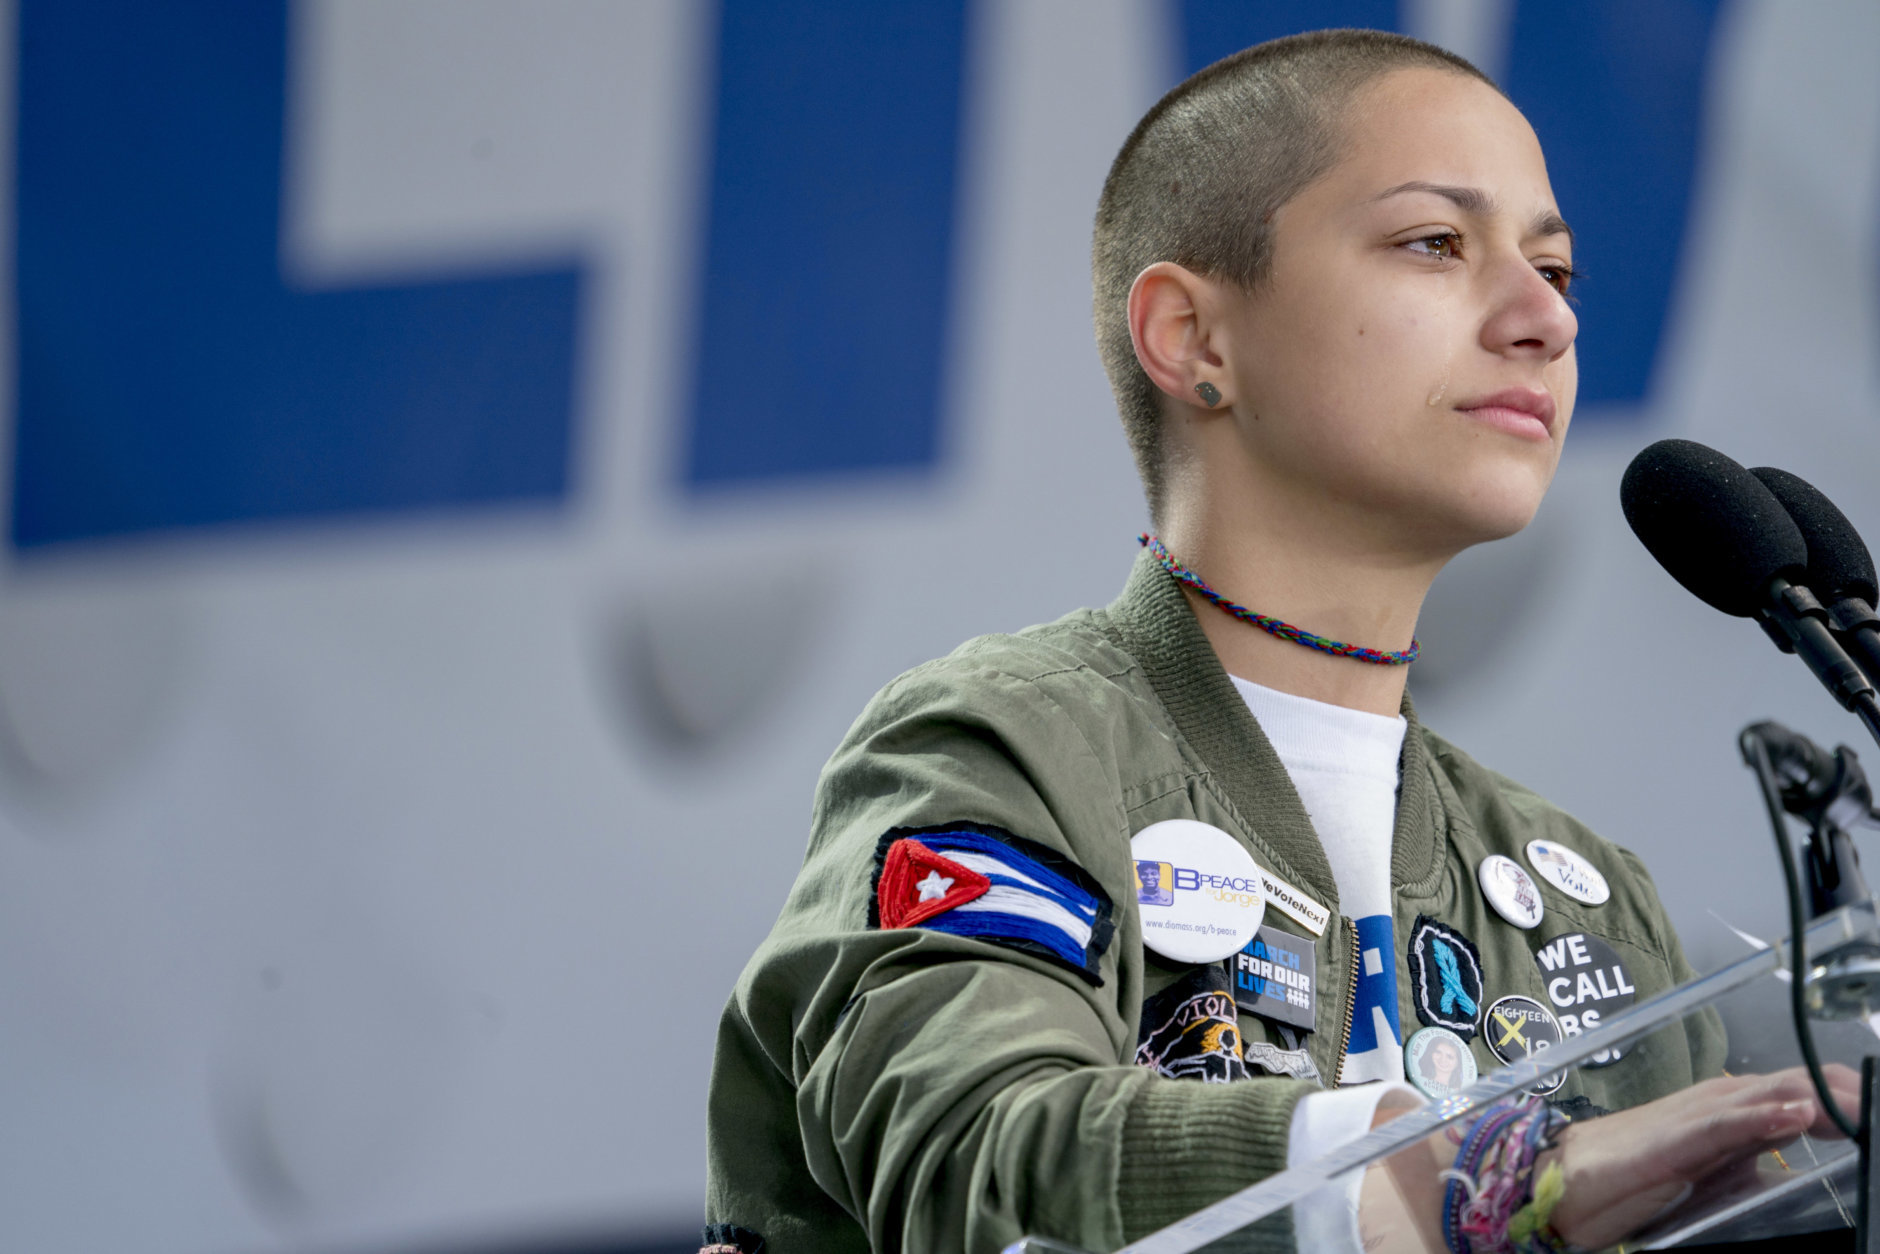 """Emma Gonzalez, a survivor of the mass shooting at Marjory Stoneman Douglas High School in Parkland, Fla., closes her eyes and cries as she stands silently at the podium and times the amount of time it took the Parkland shooter to go on his killing spree during the """"March for Our Lives"""" rally in support of gun control in Washington, Saturday, March 24, 2018. (AP Photo/Andrew Harnik)"""